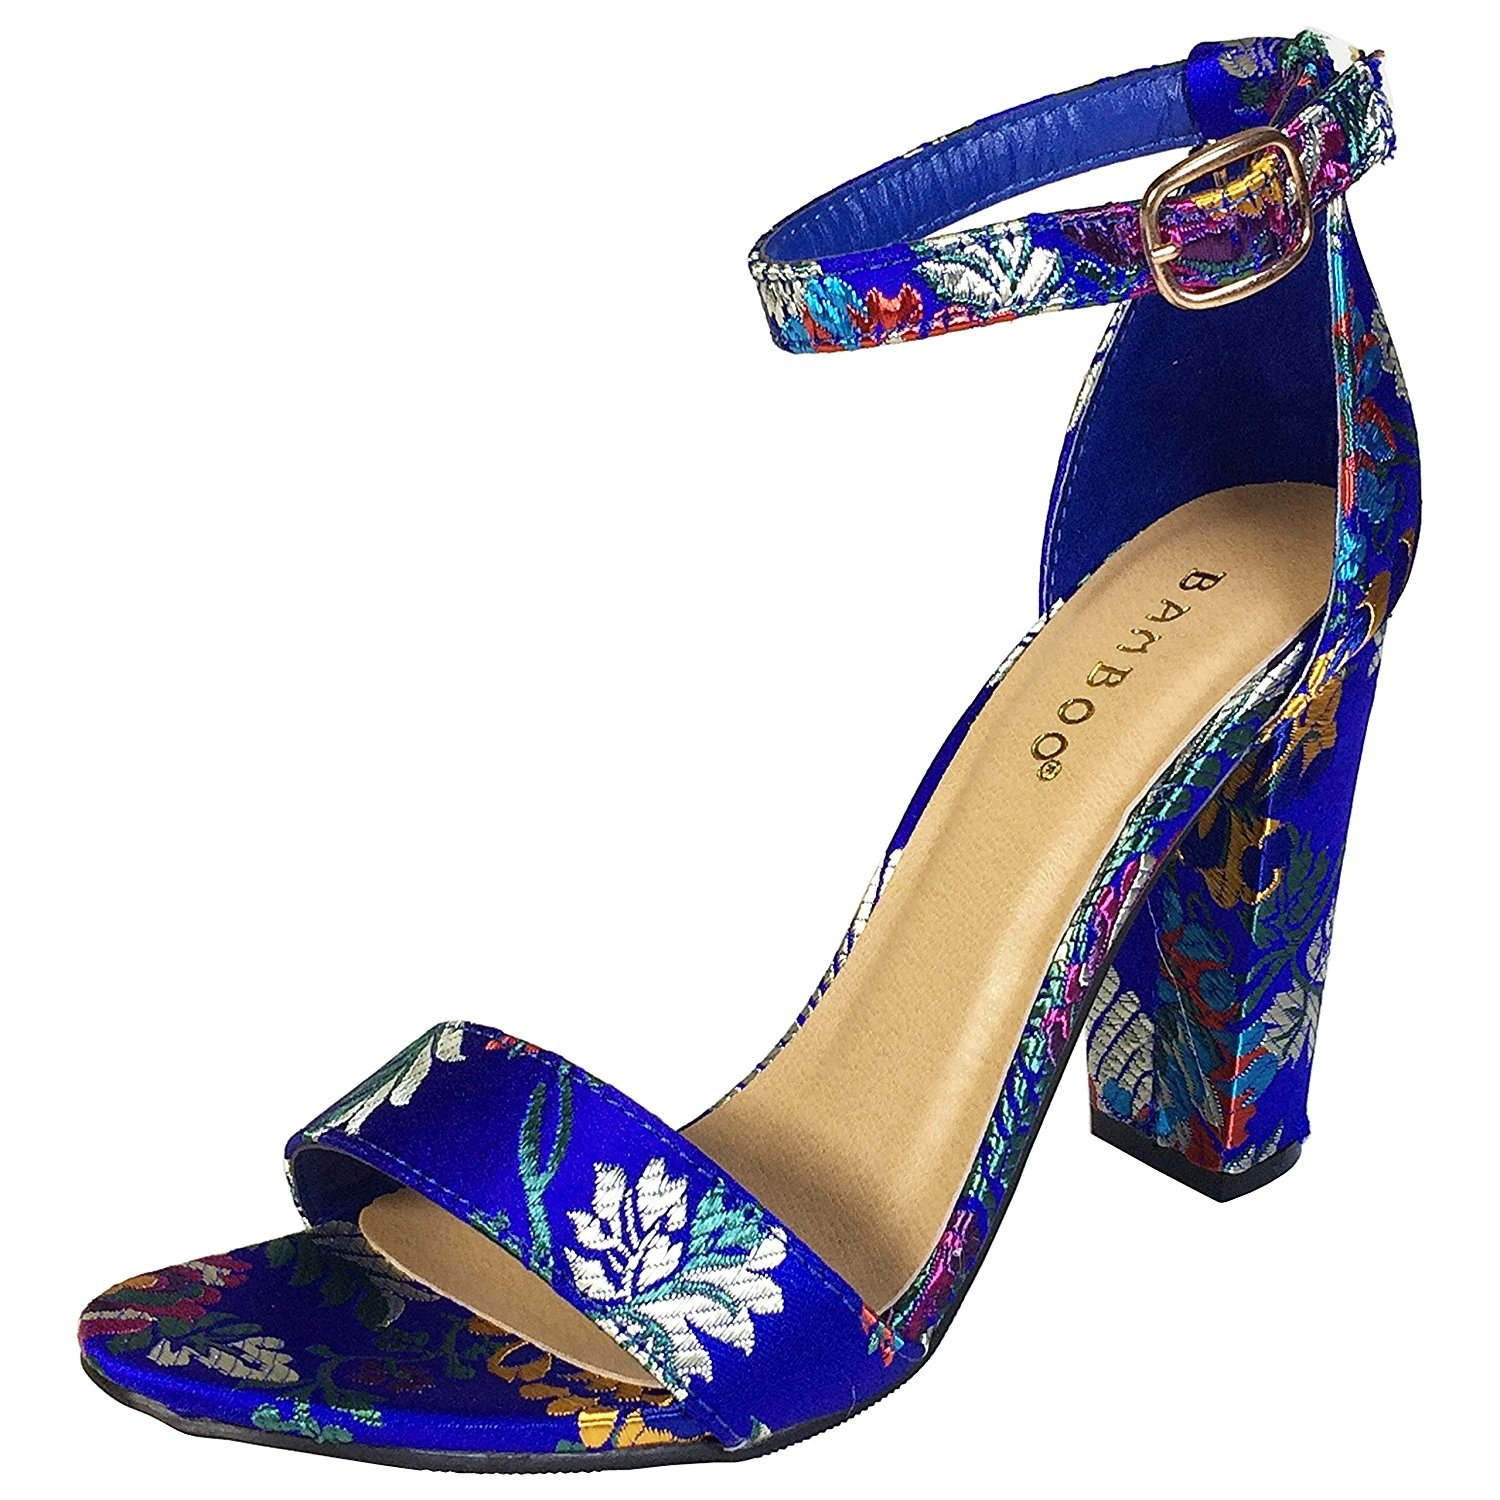 b0c8cee3b0f5 4. Comfortable brocade heels your feet won t be begging you to take off  after .5 seconds of wear.